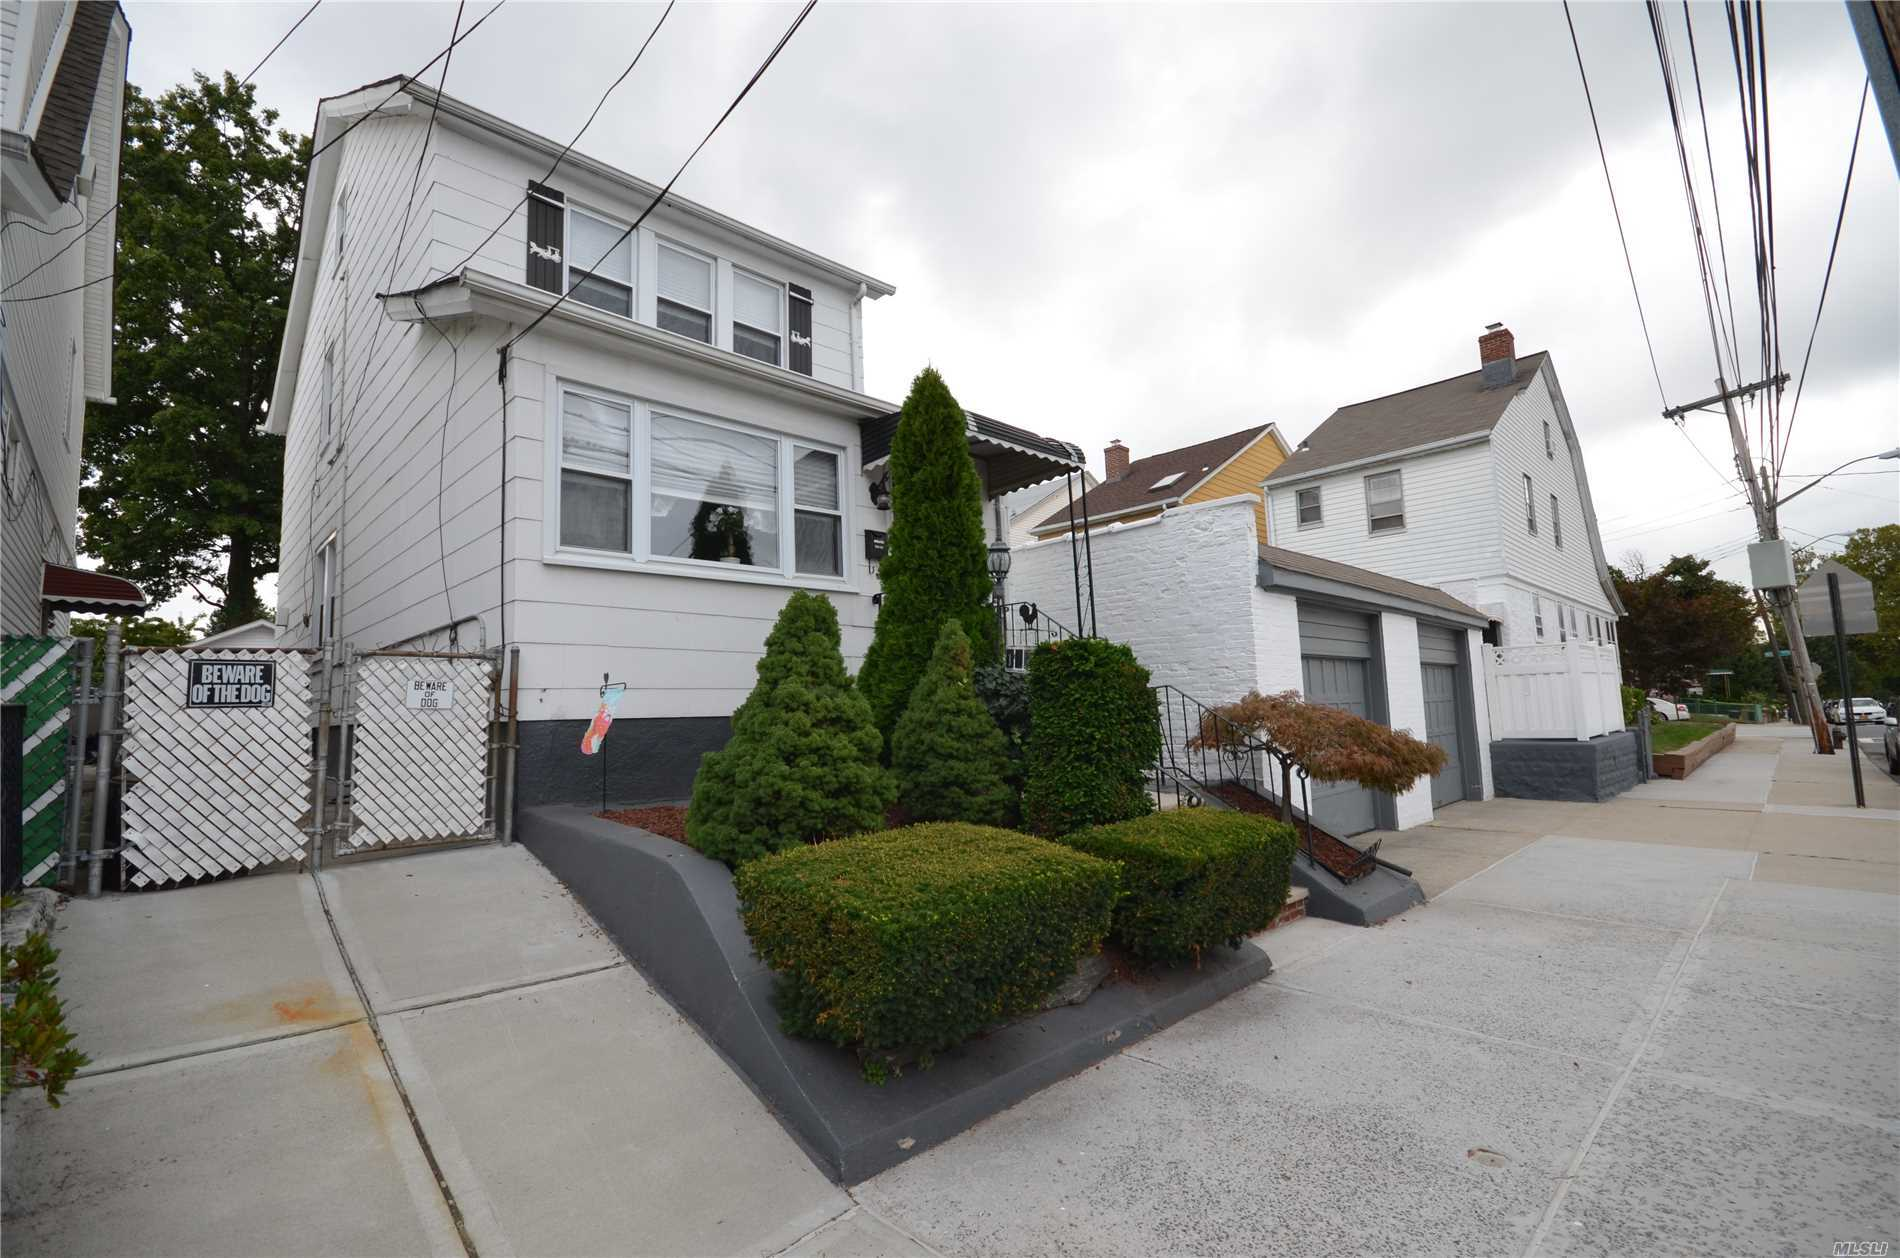 Gorgeous One Family House In Heart Of Flushing.Finished Basement With Separate Entrance. Detached Garage & Private Driveway. Close To Park, Schools, Highway, Supermarket, Shopping, Transportation...Etc.